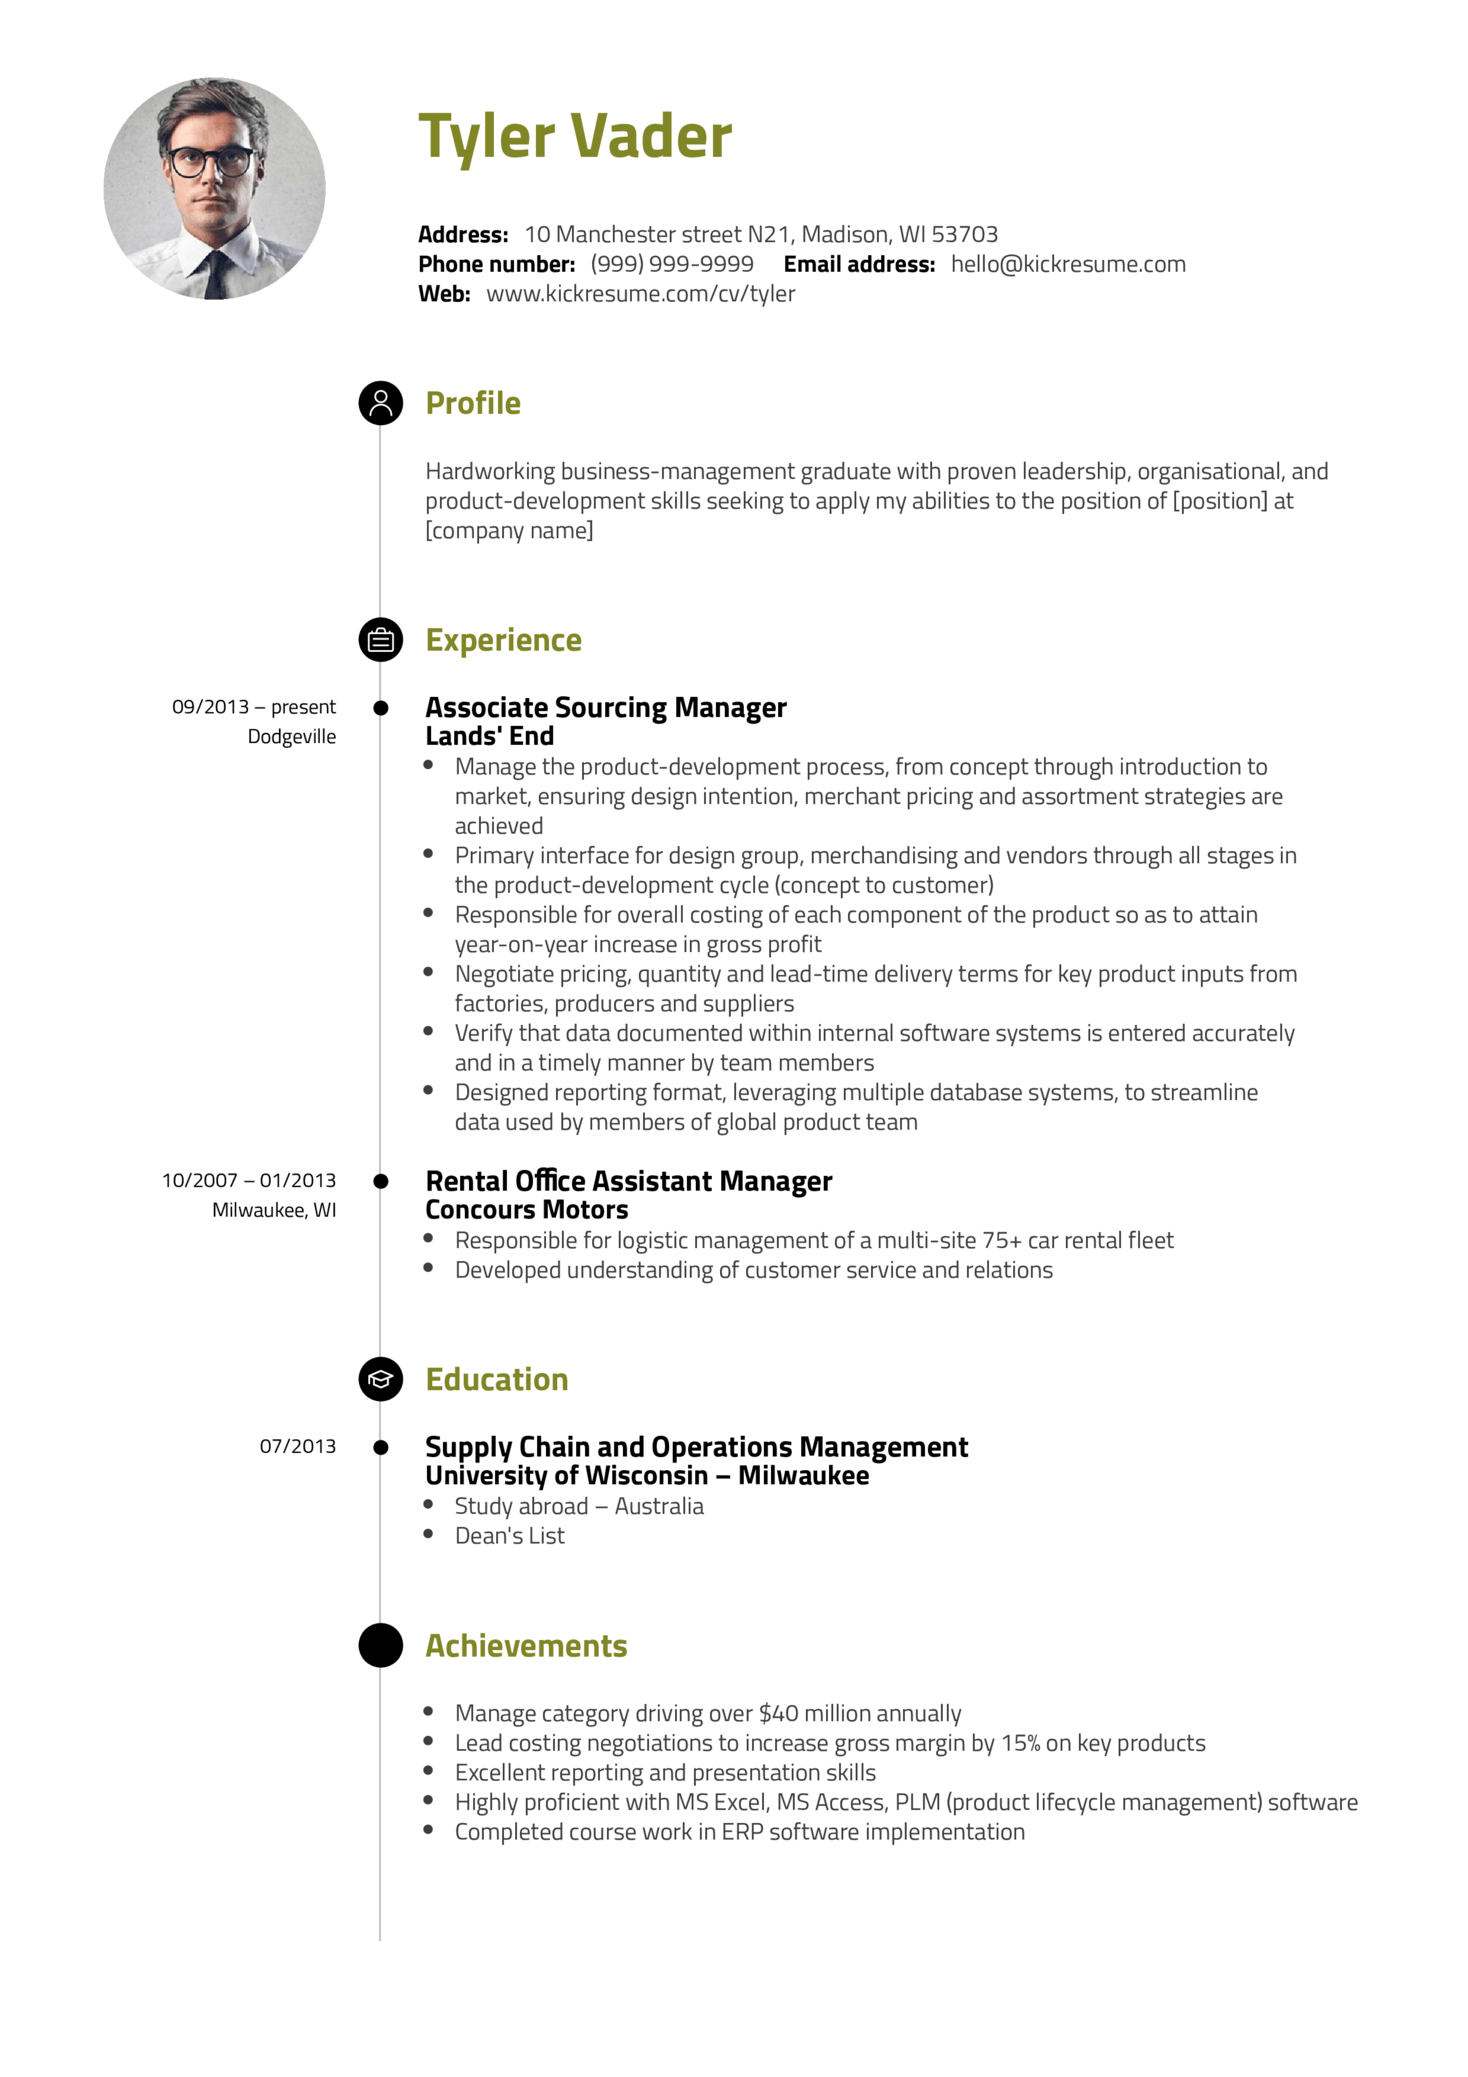 Example Resumes Resume Examples By Real People Business Management Graduate Cv